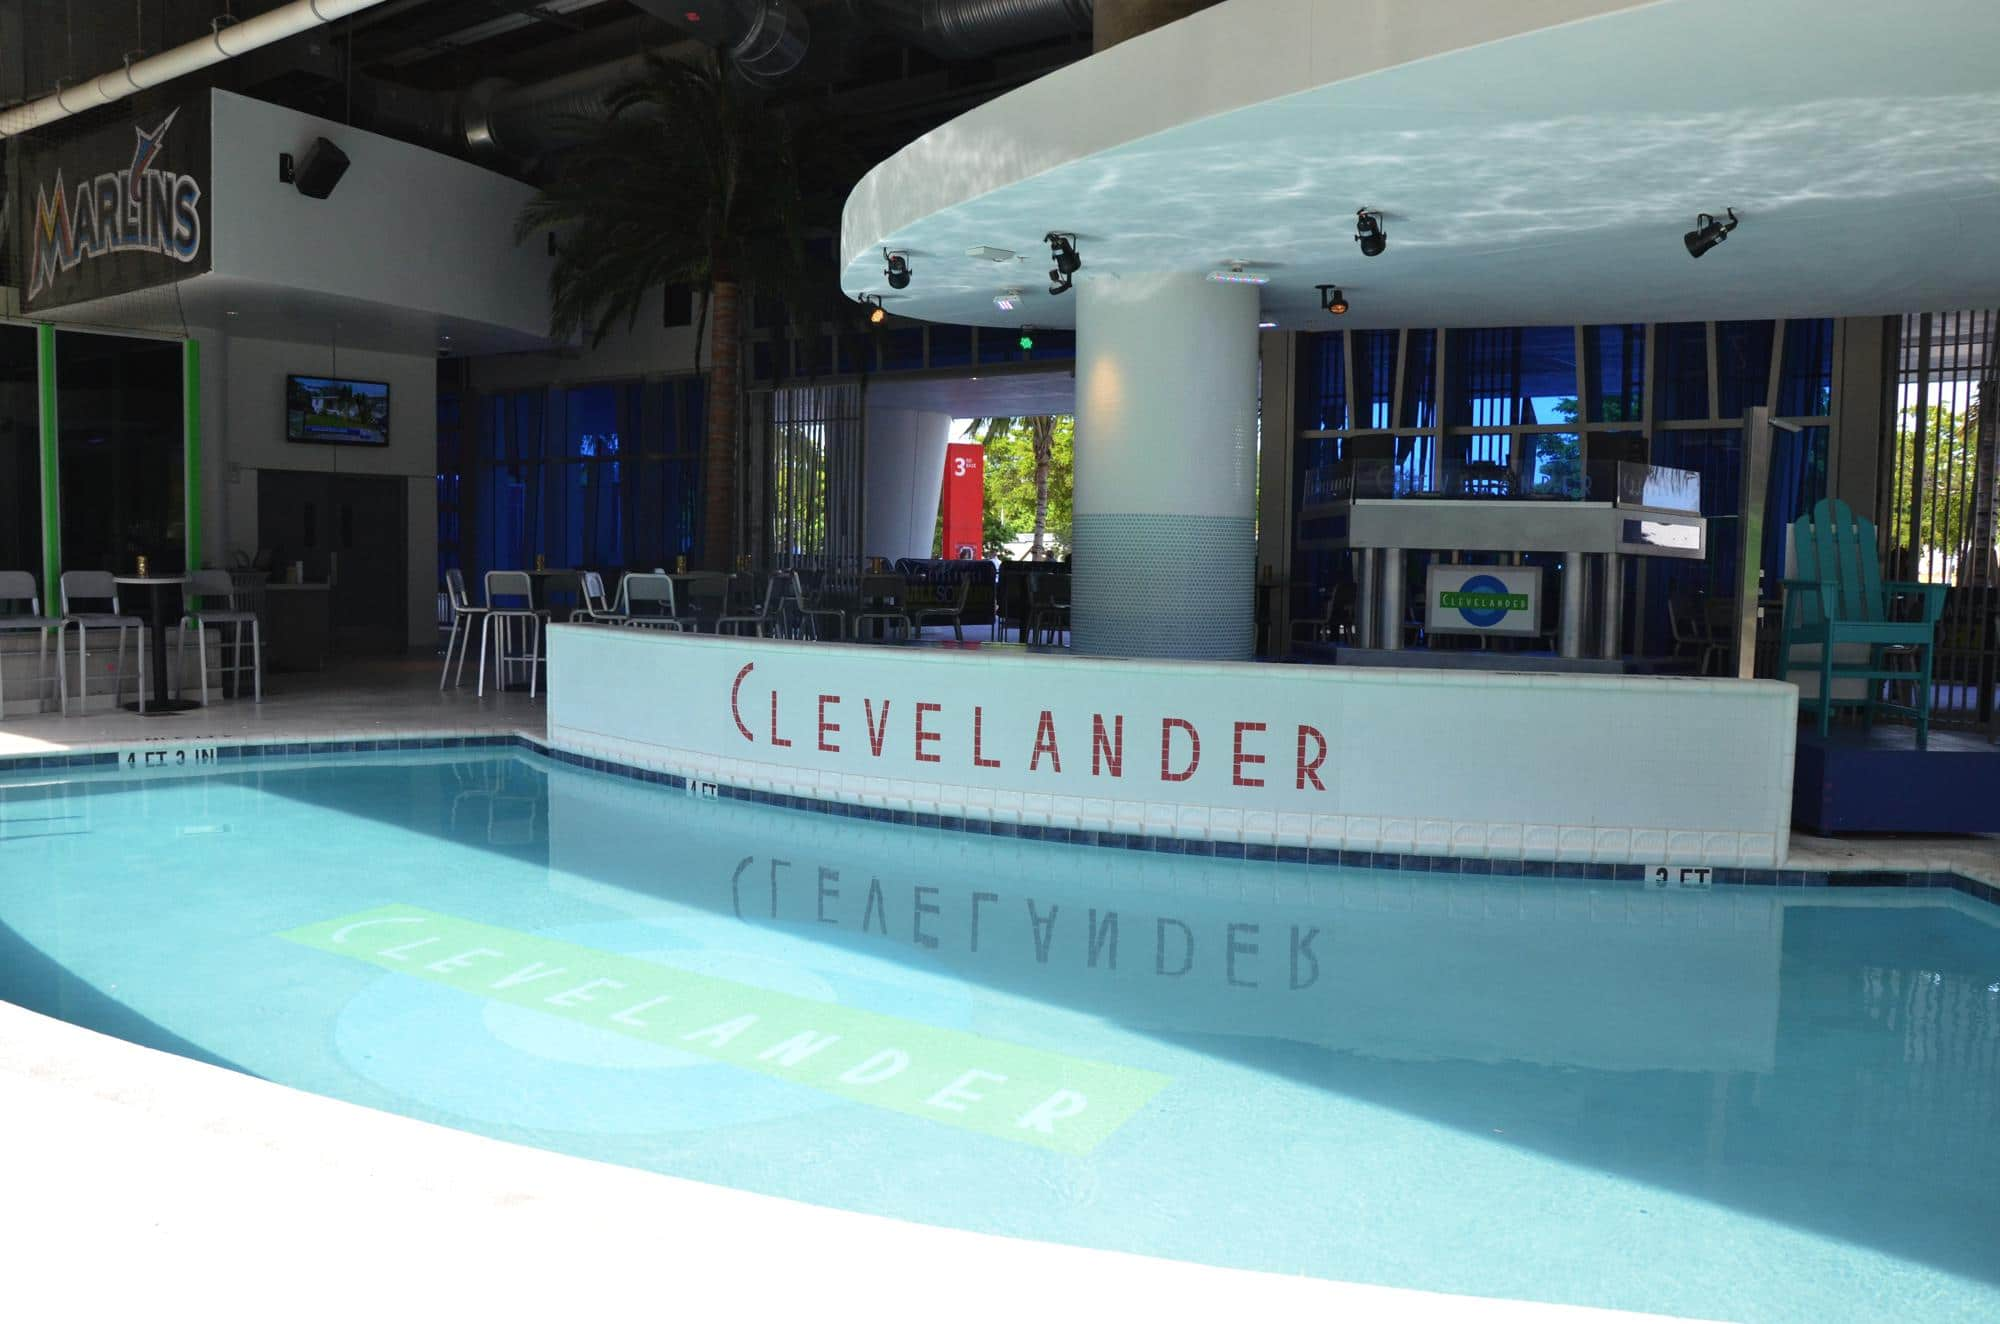 The Clevelander at Marlins Park